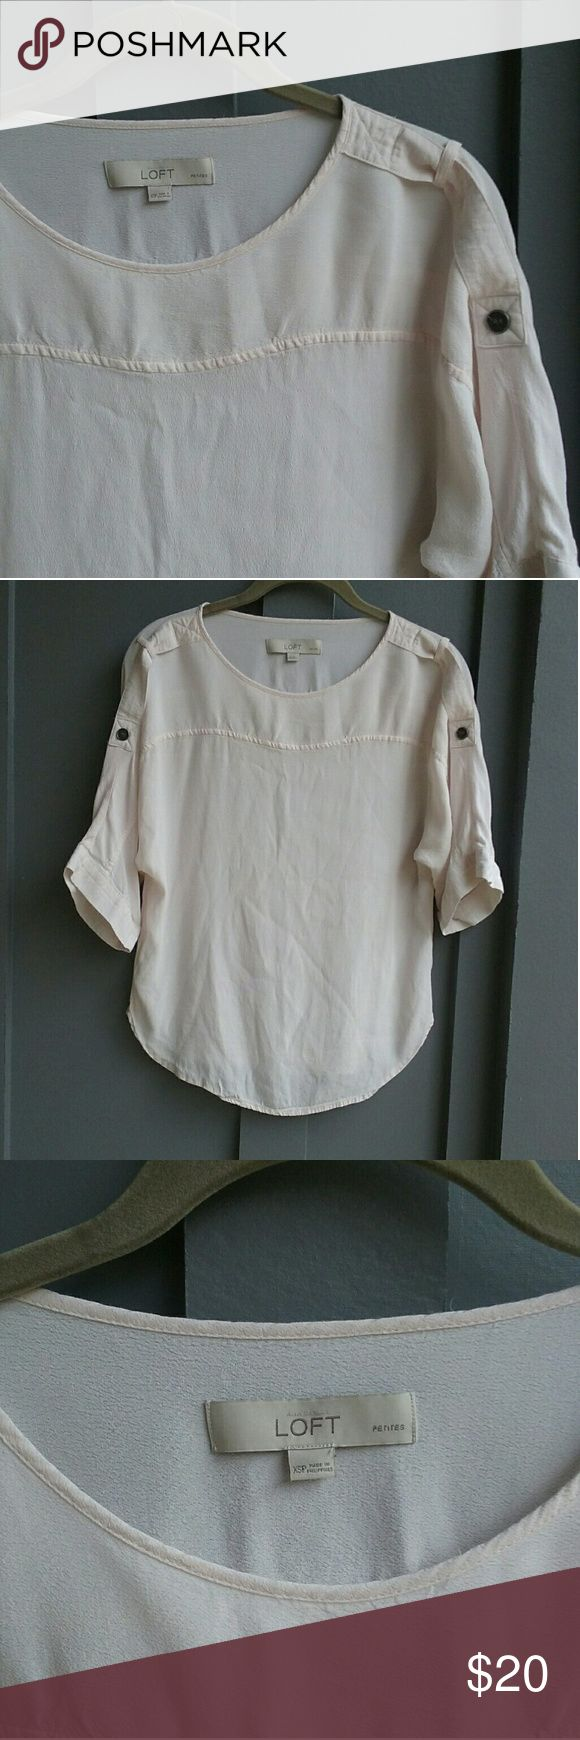 LOFT Batwing Top Beautiful light pink top from LOFT. Cute tab detail on shoulders. Petite xs LOFT Tops Blouses